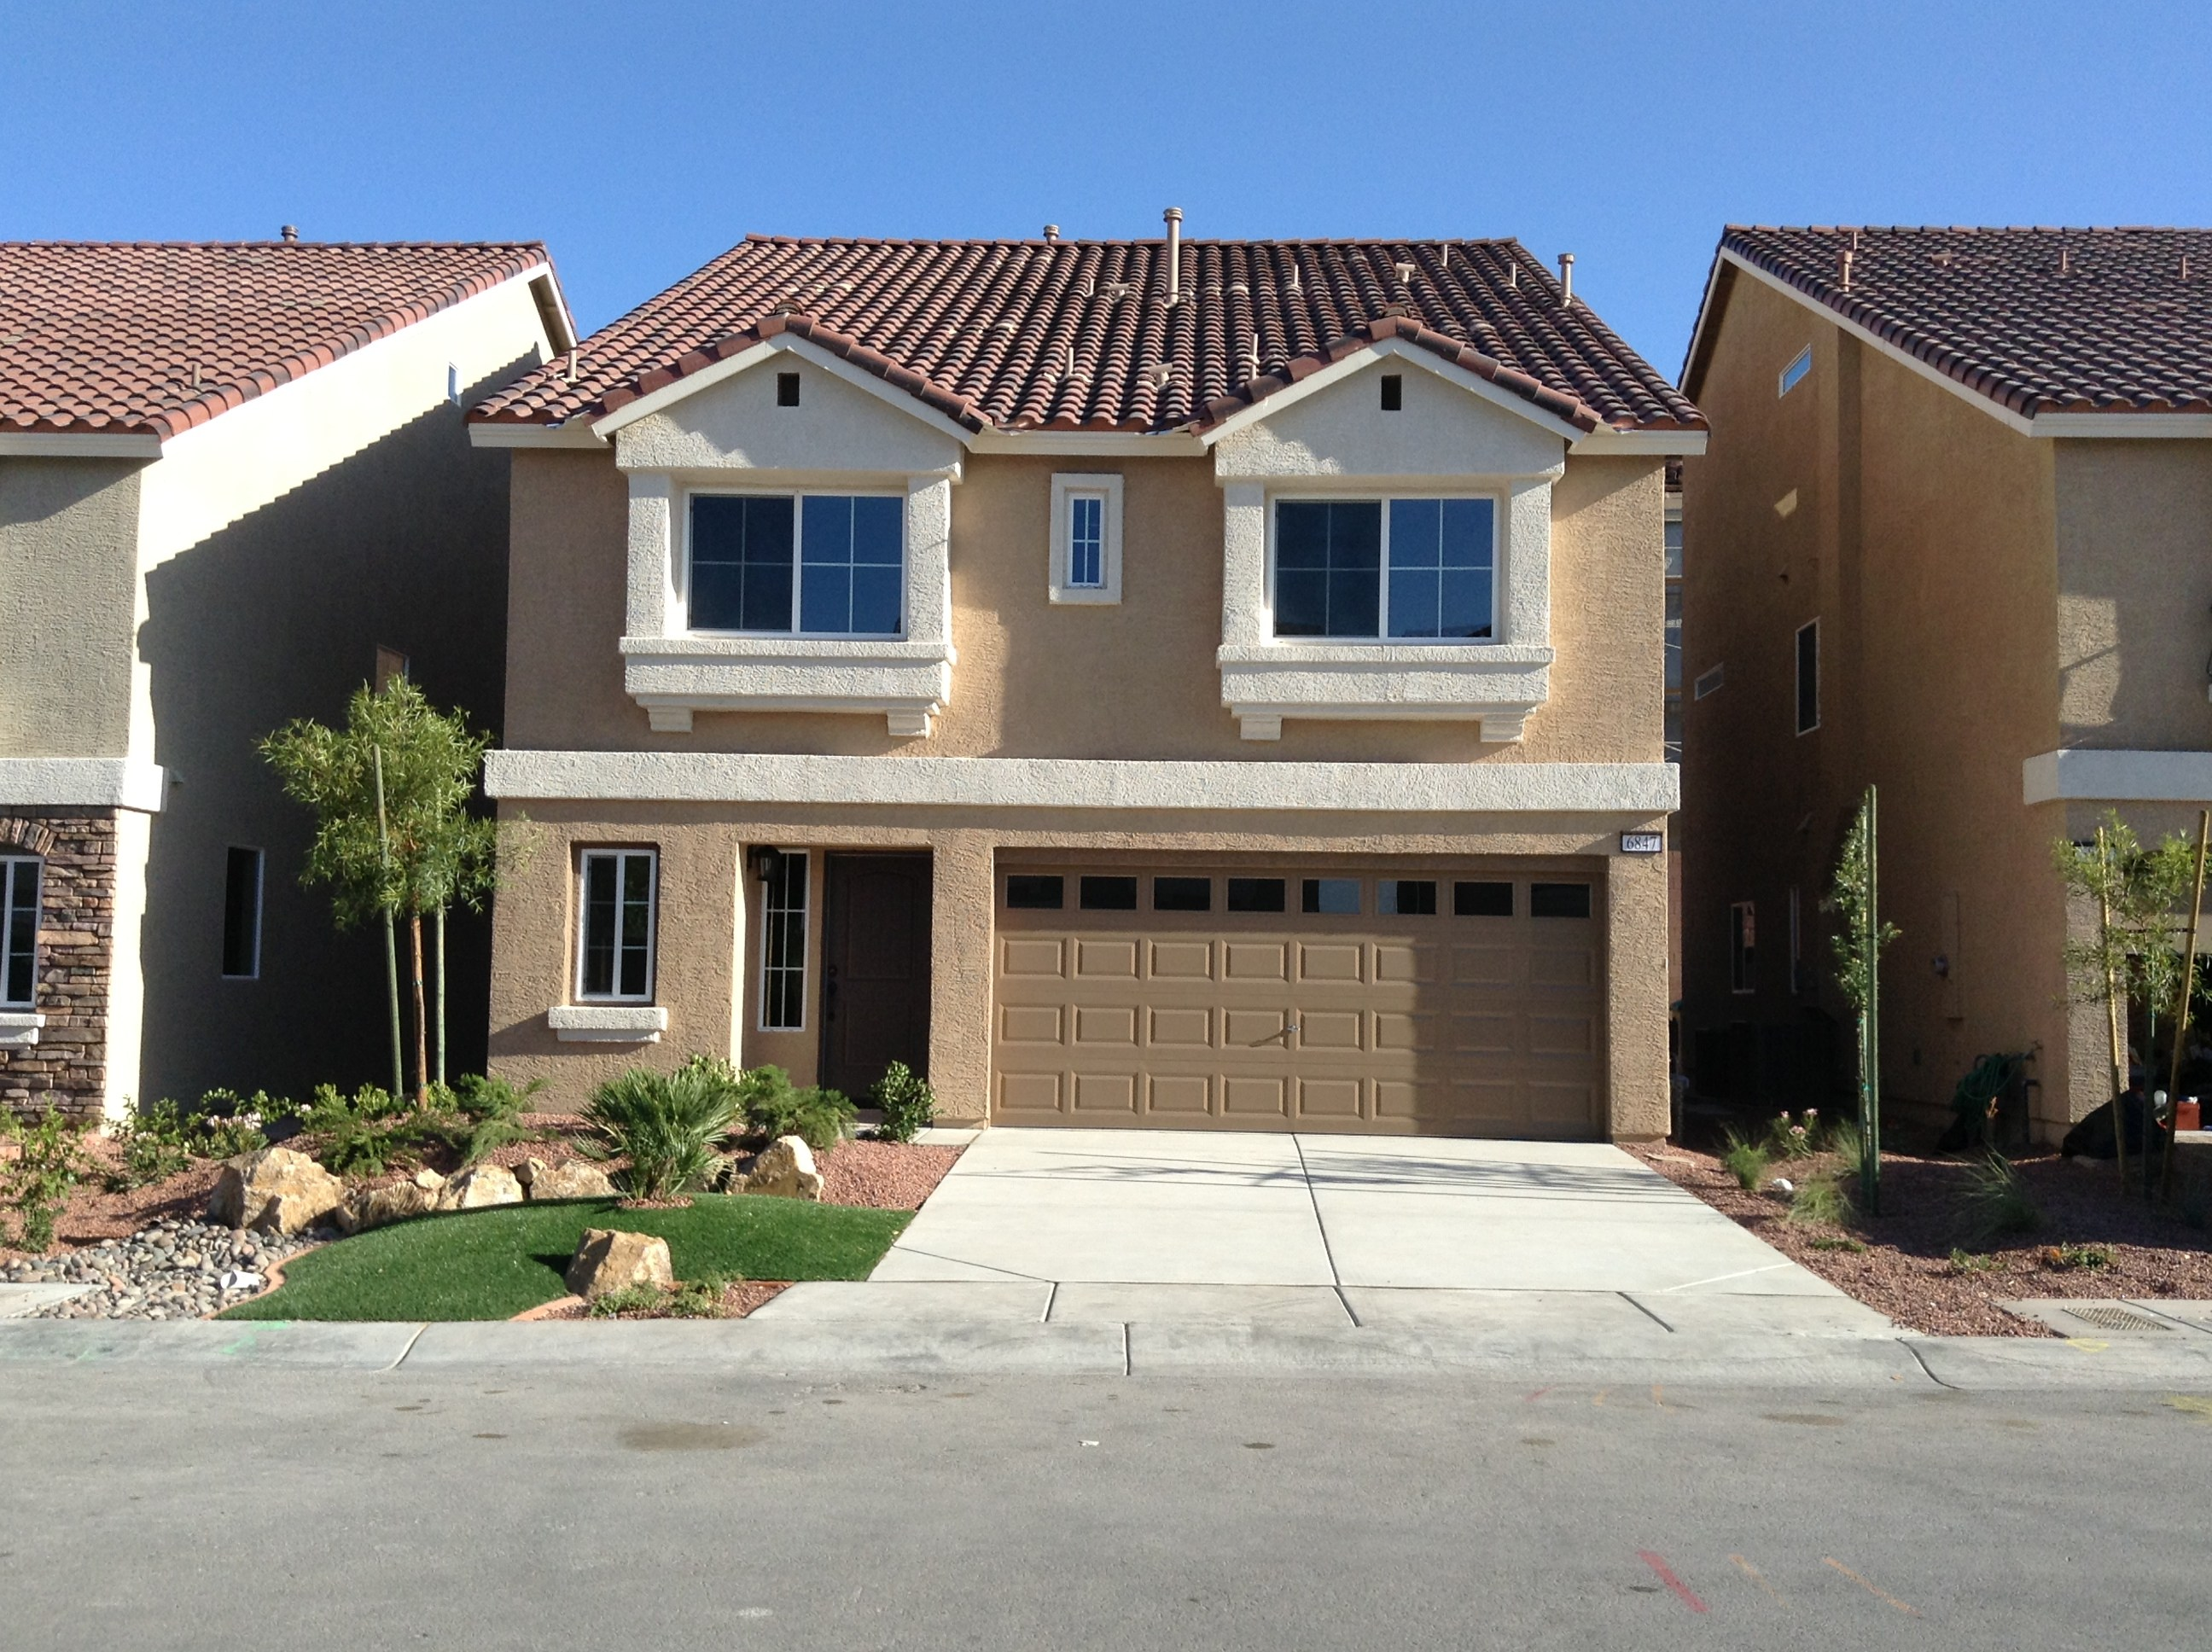 ,Four Bedroom Houses For Rent  ,four bedroom houses for rent section 8  ,four bedroom houses for rent by owner  ,four bedroom houses for rent in columbus ga  ,4 bedroom houses for rent  ,4 bedroom houses for rent in los angeles  ,4 bedroom houses for rent in memphis tn  ,4 bedroom houses for rent in chicago il  ,4 bedroom houses for rent in winnipeg  ,four bedroom homes for rent  ,4 bedroom houses for rent in calgary  ,4 bedroom houses for rent in miami  ,4 bedroom houses for rent in florida  ,4 bedroom houses for rent in charlotte nc  ,4 bedroom houses for rent in fort wayne indiana  ,4 bedroom houses for rent in dc  ,4 bedroom houses for rent in halifax  ,4 bedroom houses for rent in edmonton  ,4 bedroom houses for rent in appleton wi  ,4 bedroom houses for rent in cincinnati ohio  ,4 bedroom houses for rent indianapolis  ,4 bedroom houses for rent accept section 8  ,4 bedroom houses for rent atlanta ga  ,4 bedroom houses for rent adelaide  ,4 bedroom houses for rent augusta ga  ,4 bedroom houses for rent austin tx  ,4 bedroom houses for rent albany ga  ,4 bedroom houses for rent allentown pa  ,4 bedroom houses for rent arlington tx  ,4 bedroom houses for rent amherst ma  ,4 bedroom houses for rent amarillo tx  ,4 bedroom houses for rent albuquerque  ,4 bedroom houses for rent ashford kent  ,4 bedroom houses for rent appleton wi  ,4 bedroom houses for rent alexandria la  ,4 bedroom house for rent aberdeen  ,4 bedroom house for rent auckland  ,4 bedroom house for rent accrington  ,4 bedroom houses for rent in austin mn  ,4 bedroom houses for rent in ardmore ok  ,4 bedroom houses for rent los angeles  ,3-4 bedroom houses for rent in buffalo ny  ,3 bedroom houses for rent beaumont tx  ,3 bedroom house for rent brampton  ,2 bedroom house for rent birmingham  ,3 bedroom house for rent birmingham  ,2 bedroom house for rent bath  ,3 bedroom houses for rent cheap  ,3 bedroom houses for rent calgary  ,2 bedroom house for rent coventry  ,4 bedroom houses for rent dc  ,4 bedroom house for rent san diego  ,4 bed house rent dss accepted  ,3 bedroom houses for rent dayton ohio  ,3 bedroom houses for rent dundee  ,2 bedroom houses for rent dundee  ,2 bedroom houses for rent durham nc  ,3 bedroom houses for rent dumfries  ,3 bedroom houses for rent dc  ,3 bedroom houses for rent des moines iowa